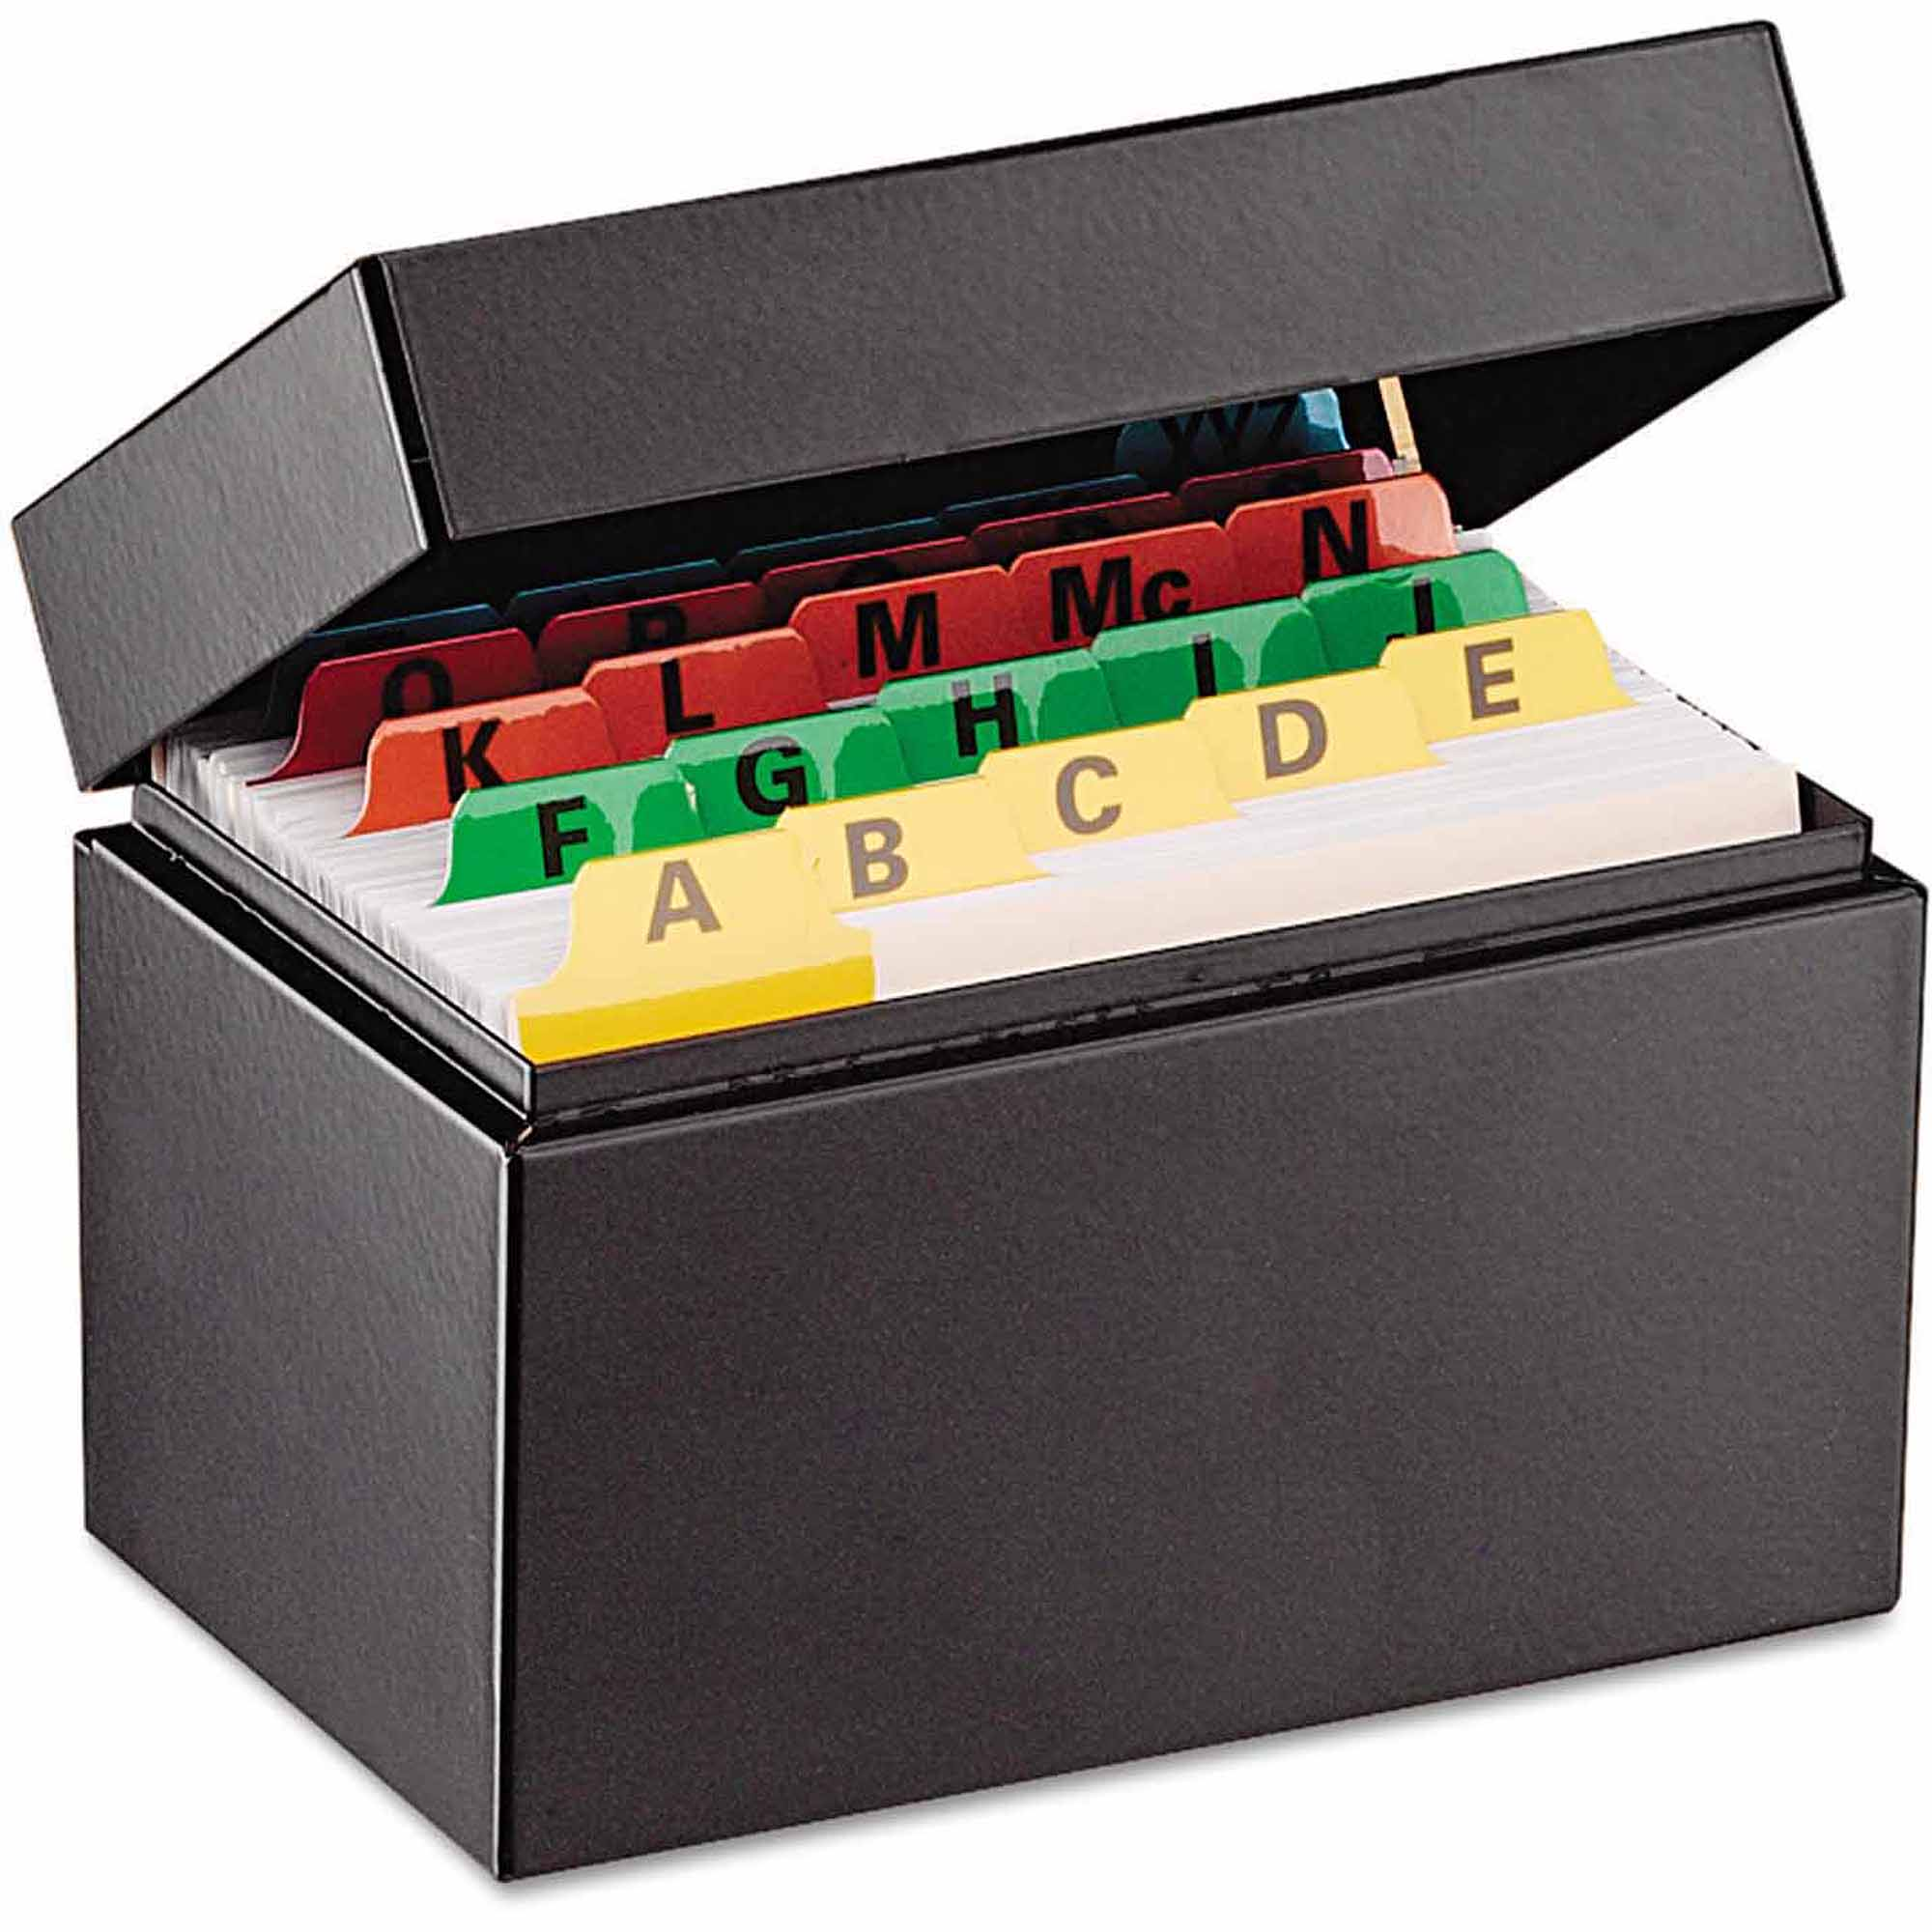 "SteelMaster Index Card File, Holds 300 3"" x 5"" cards"